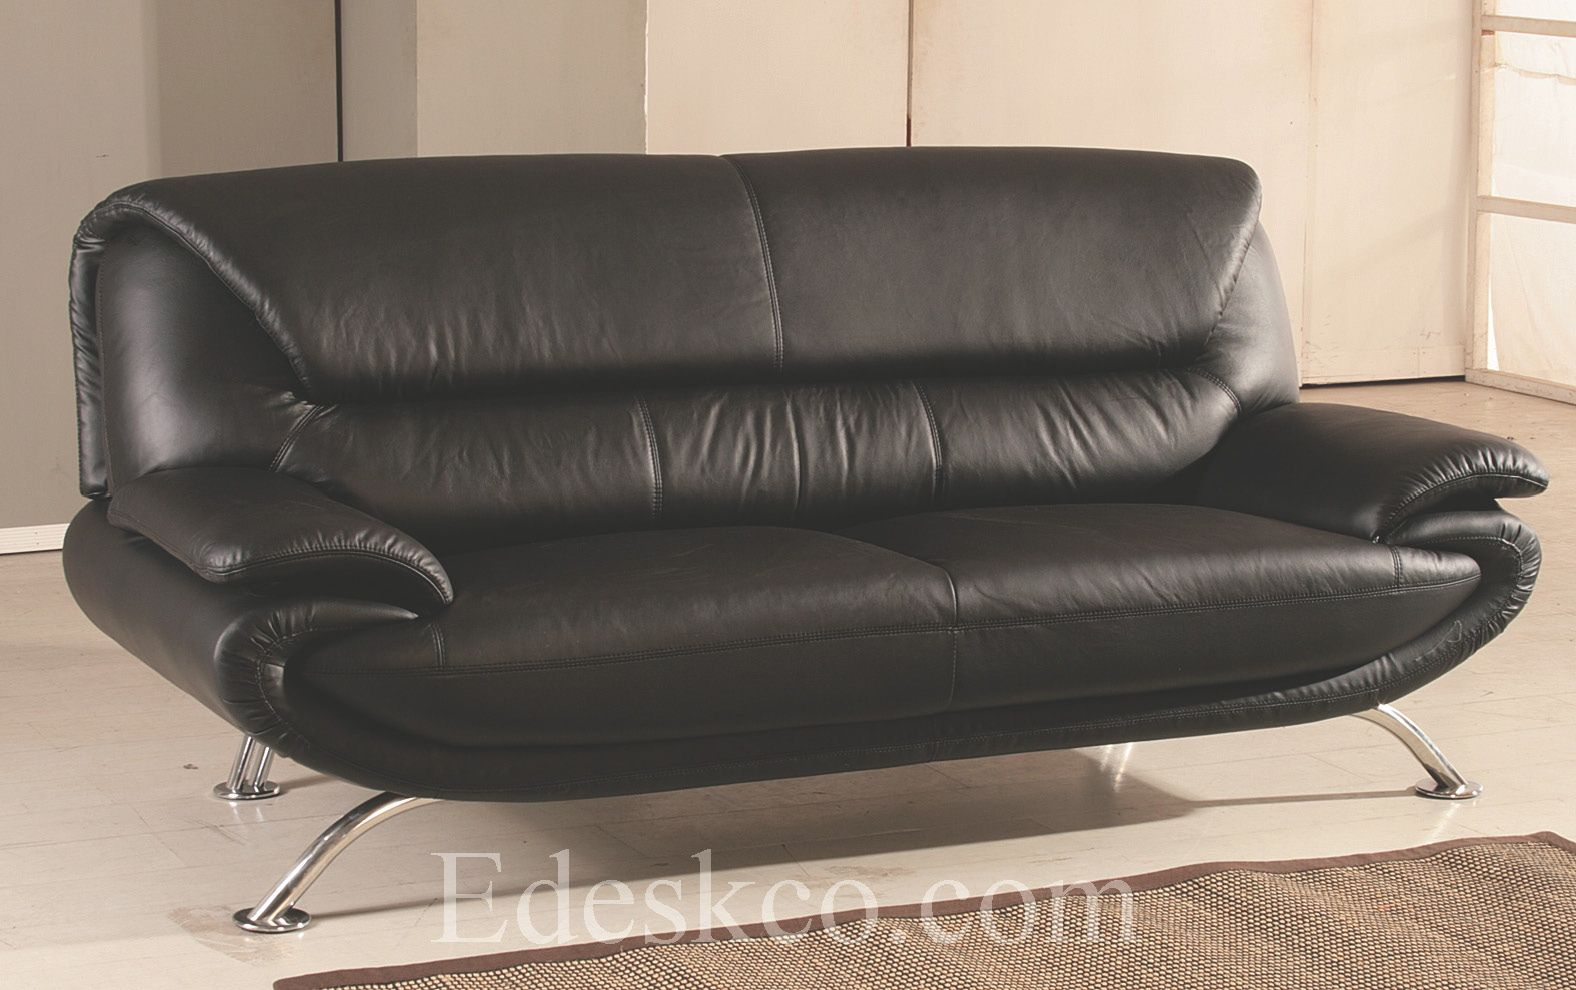 Superbe Edeskco Provides High End Leather And Fabric Office Sofas.